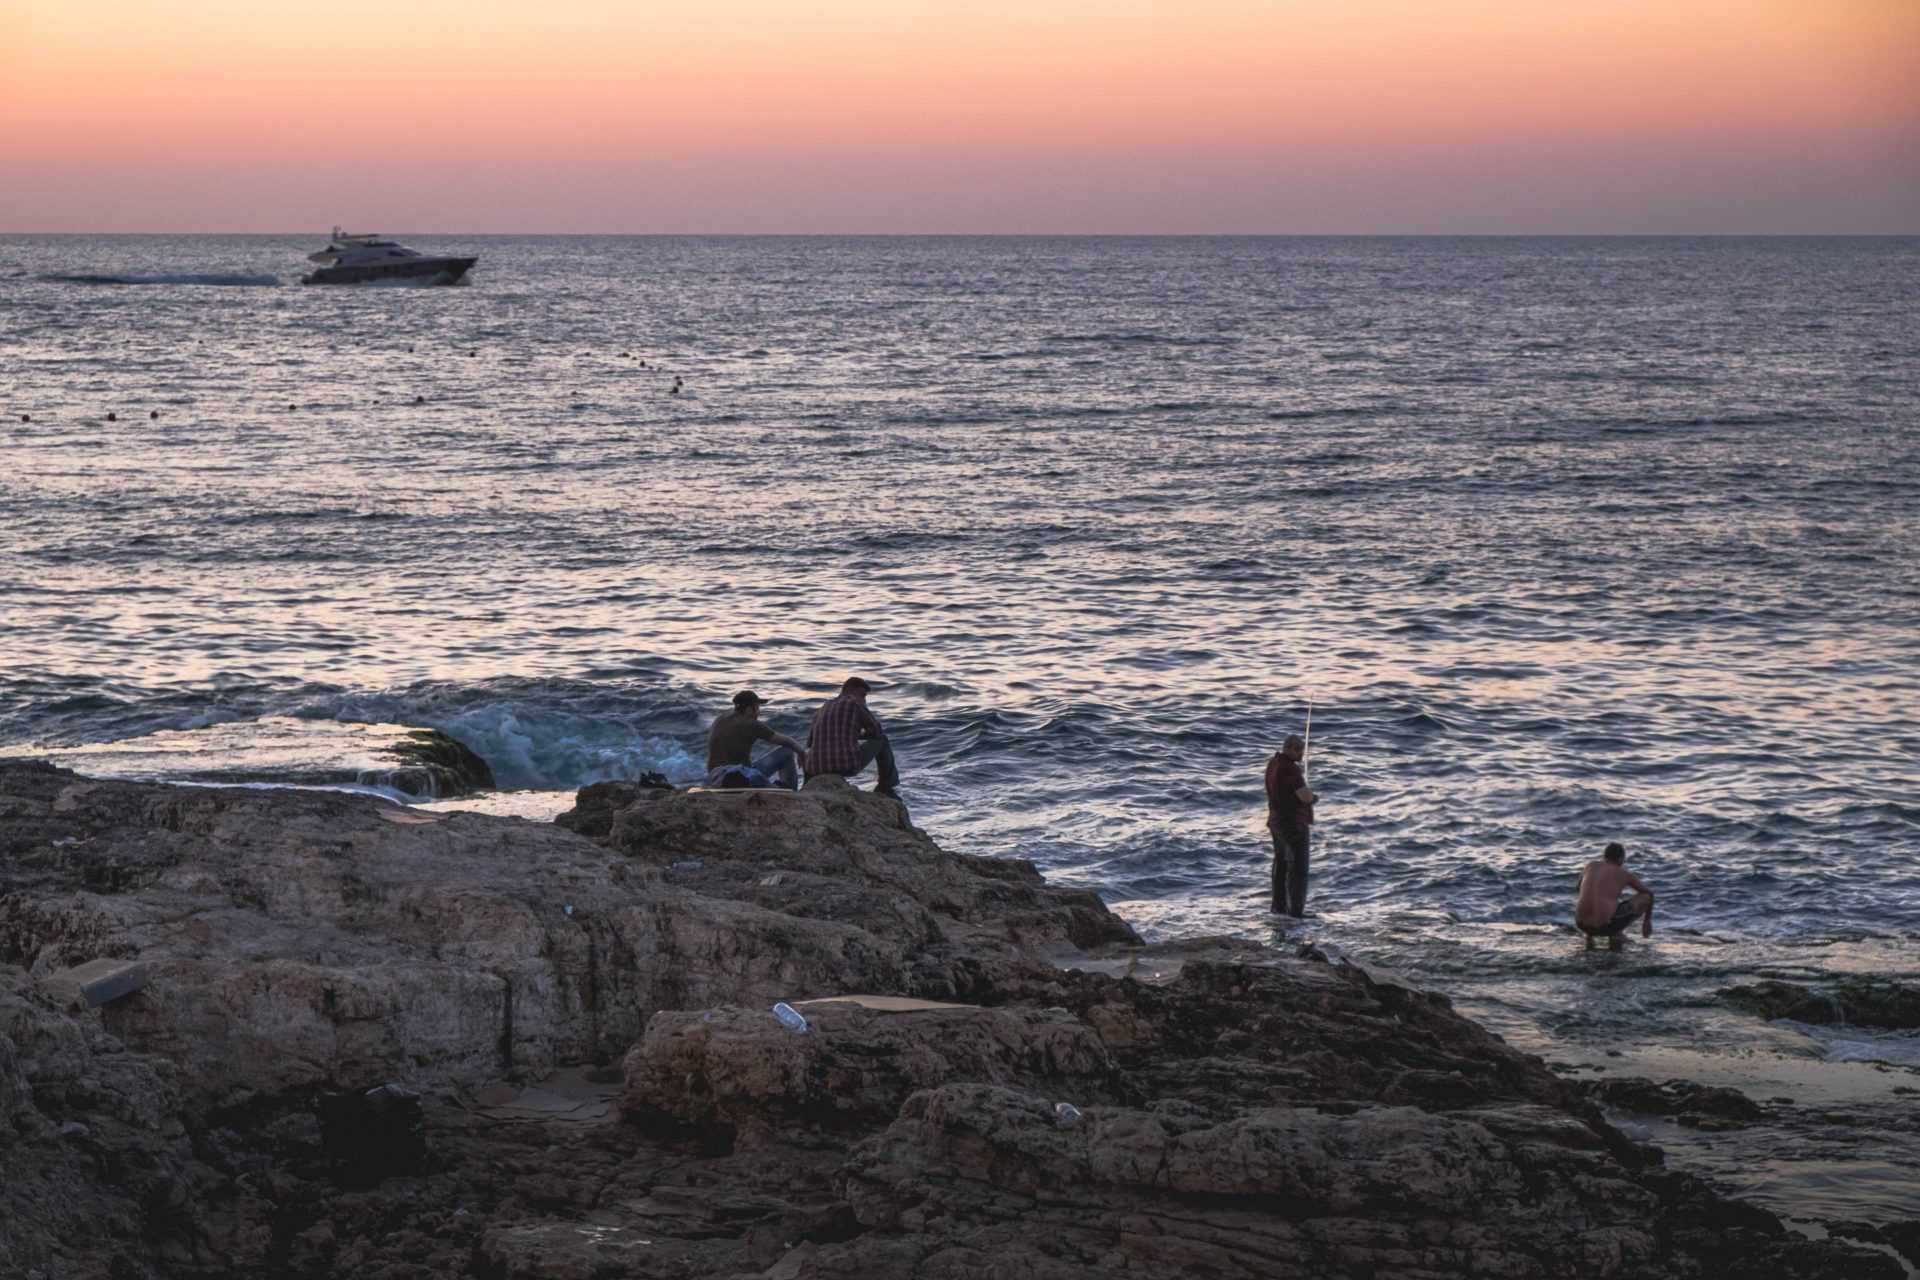 People swimming and fishing at sunset in the bay of Raouche in Beirut photo by Jo Kassis